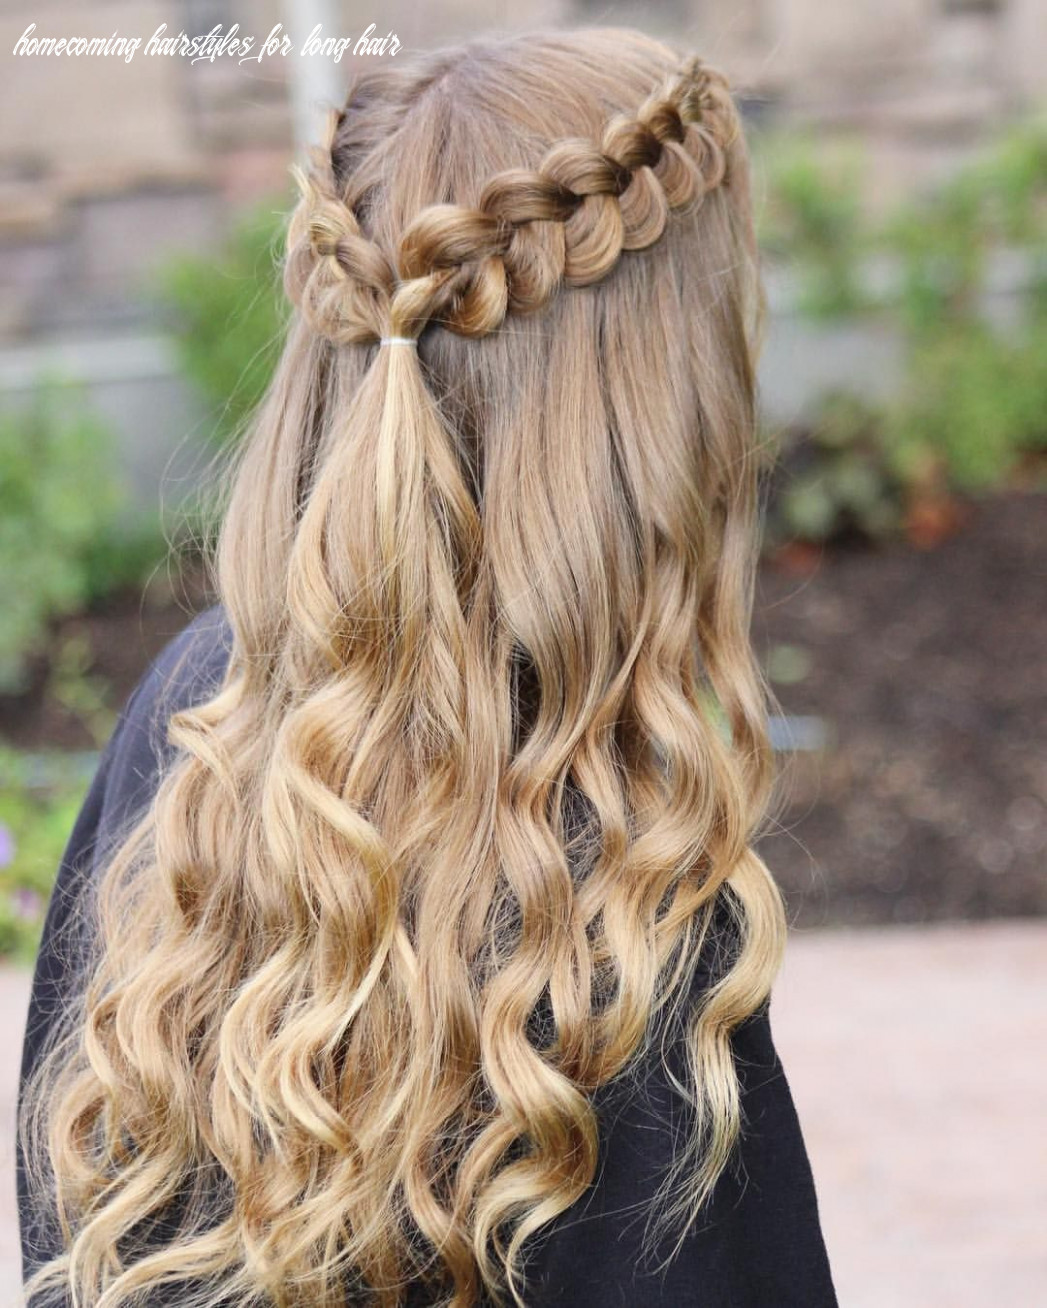 Pin by flower ❤ on حلو ❤ | prom hairstyles for long hair, simple